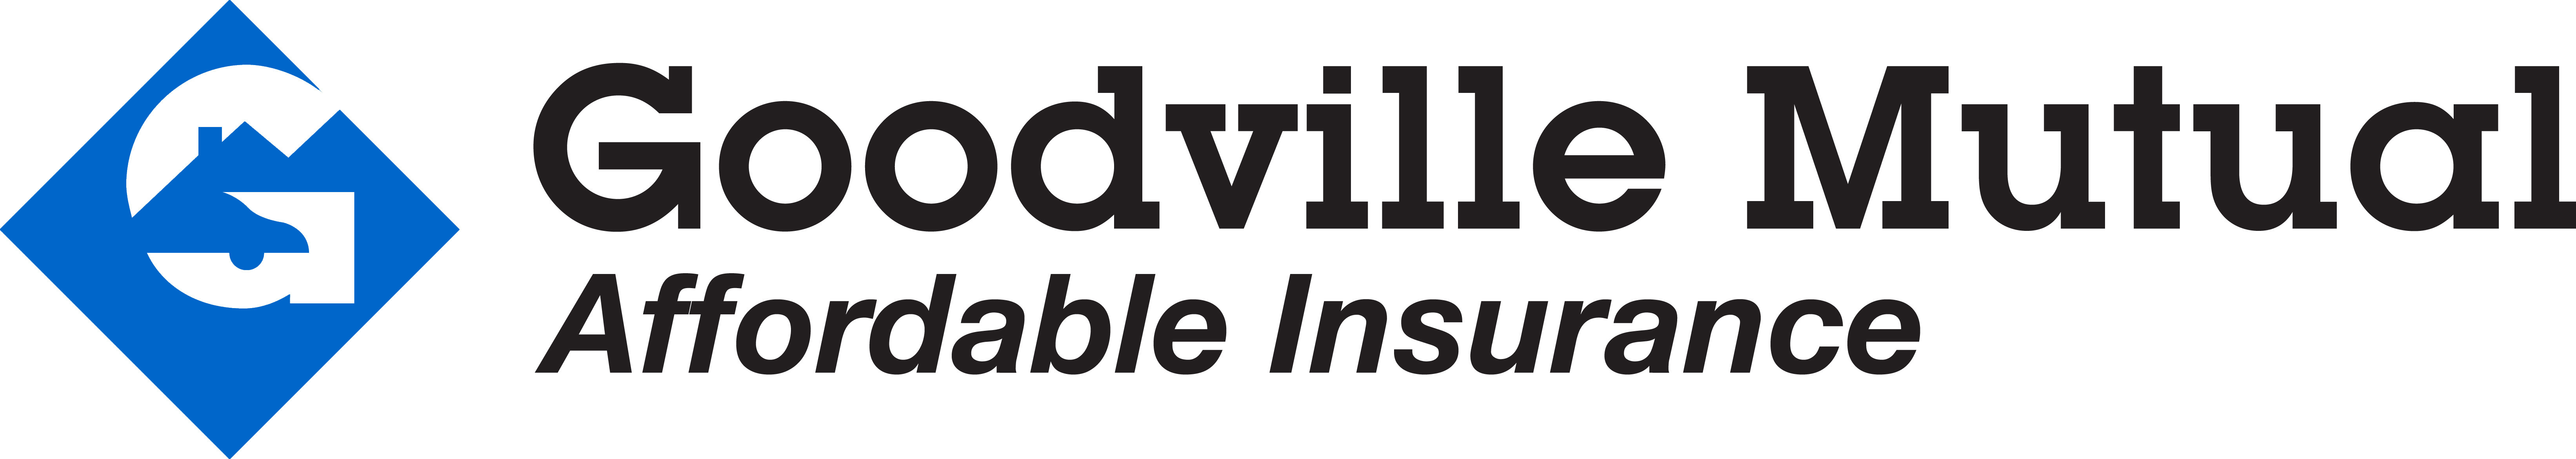 Goodville Mutual Insurance Company Image